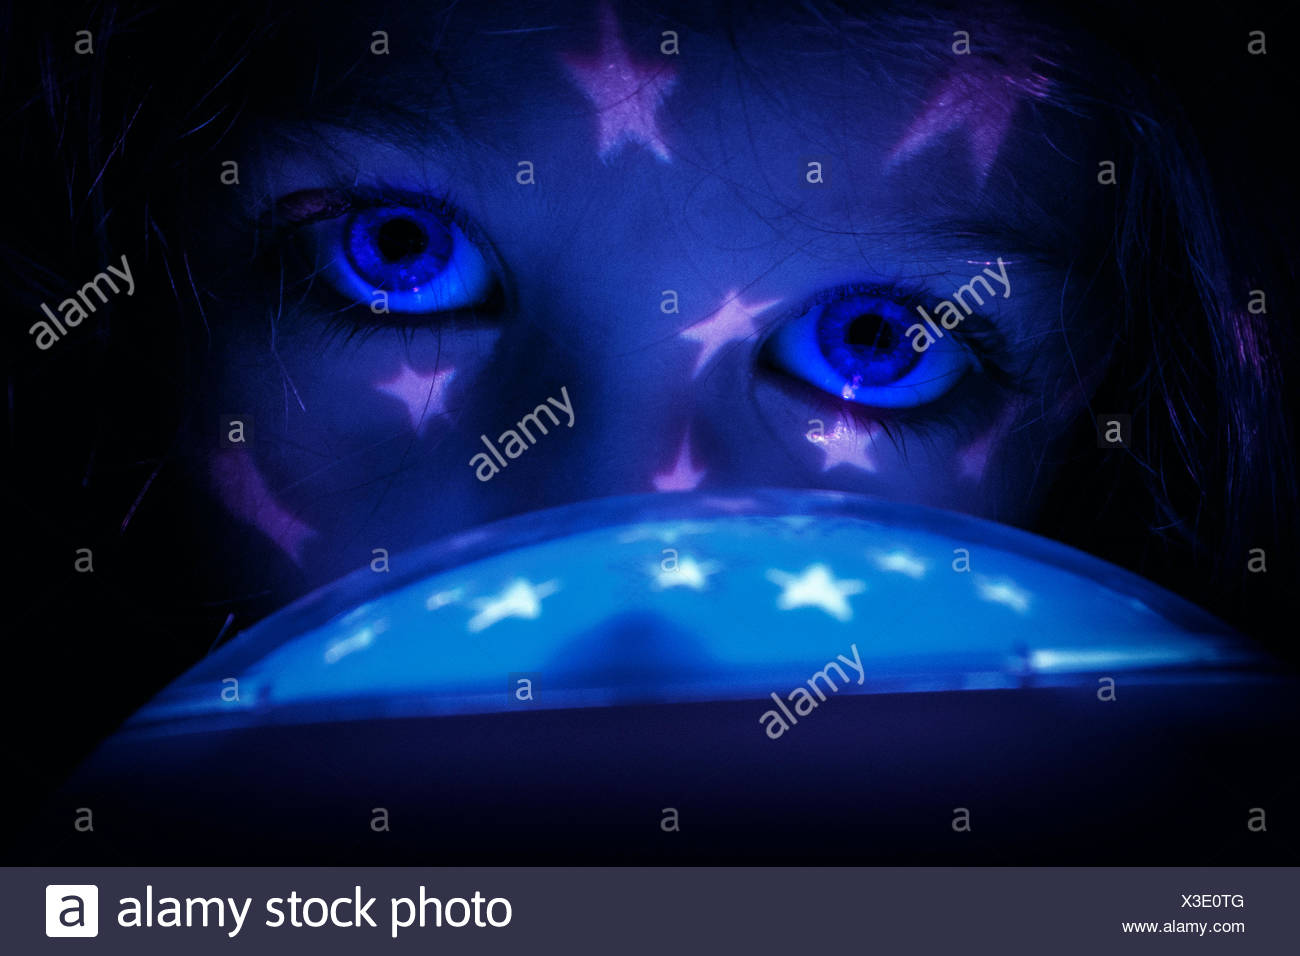 Girl with a star light reflecting in her face - Stock Image